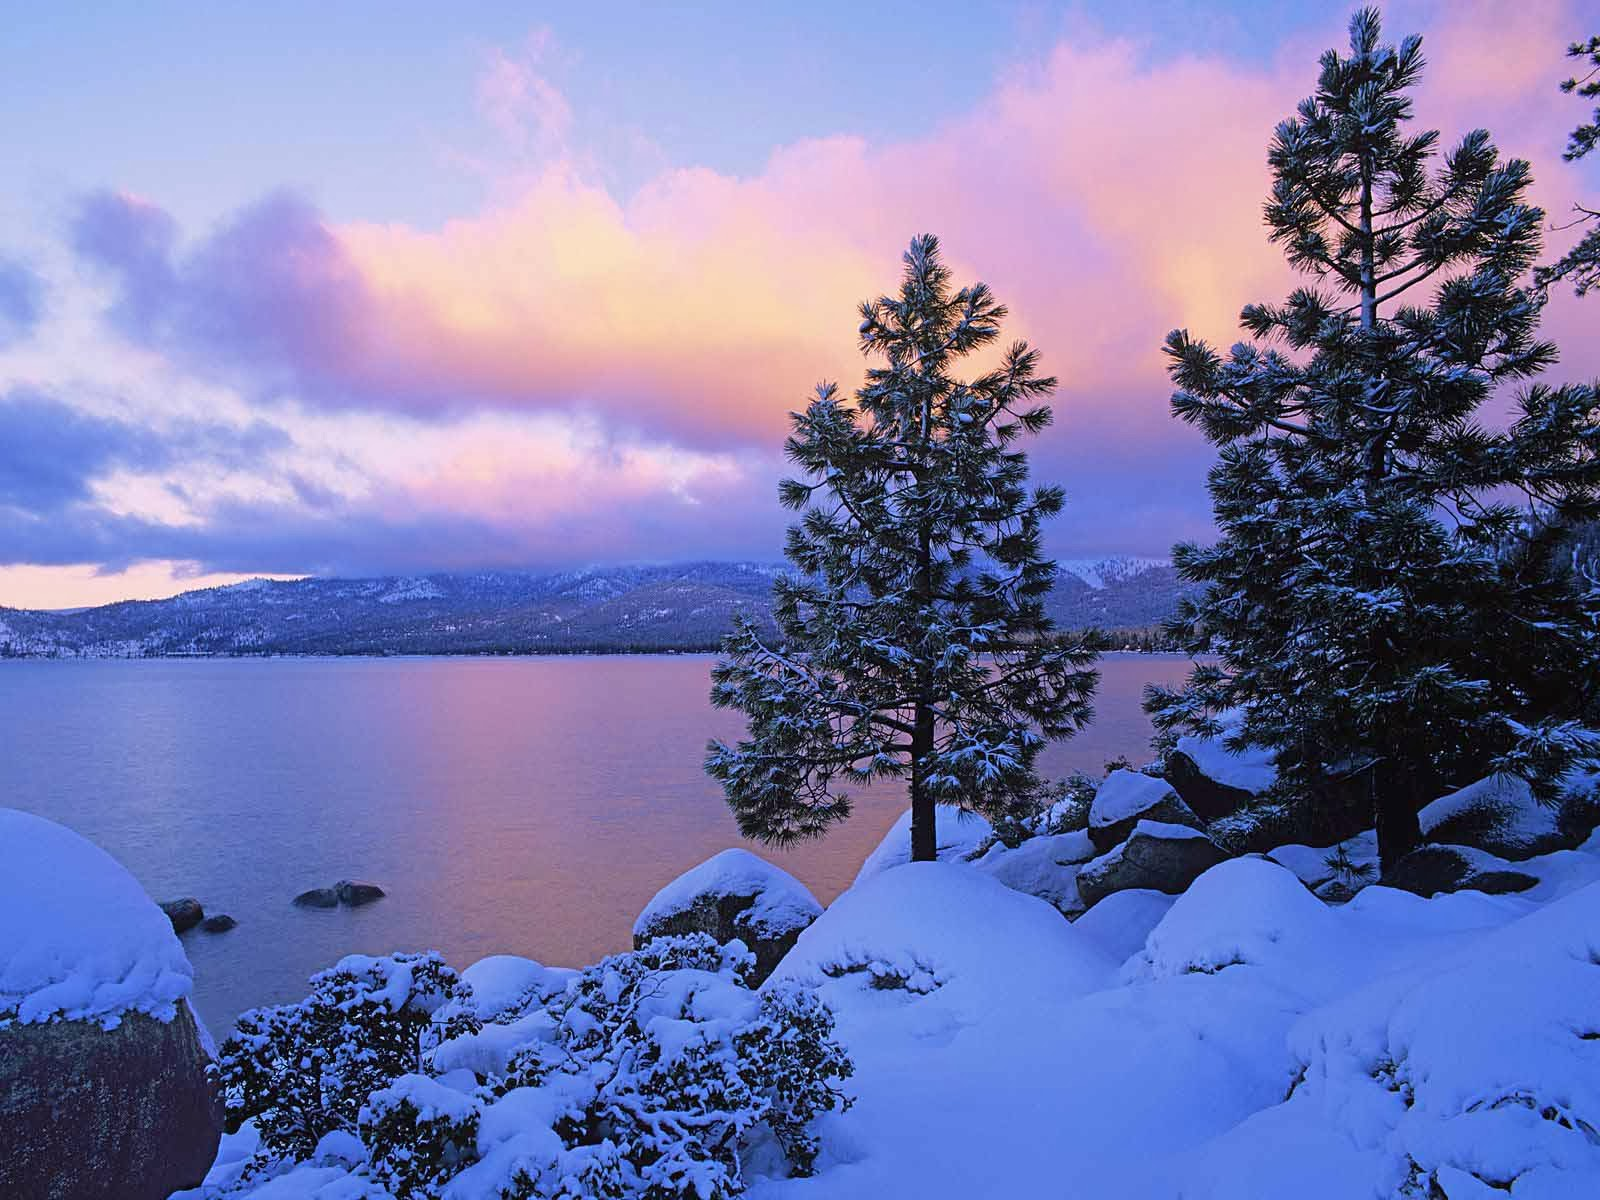 HD Wallpapers Emerald Bay HD Wallpapers 1600x1200